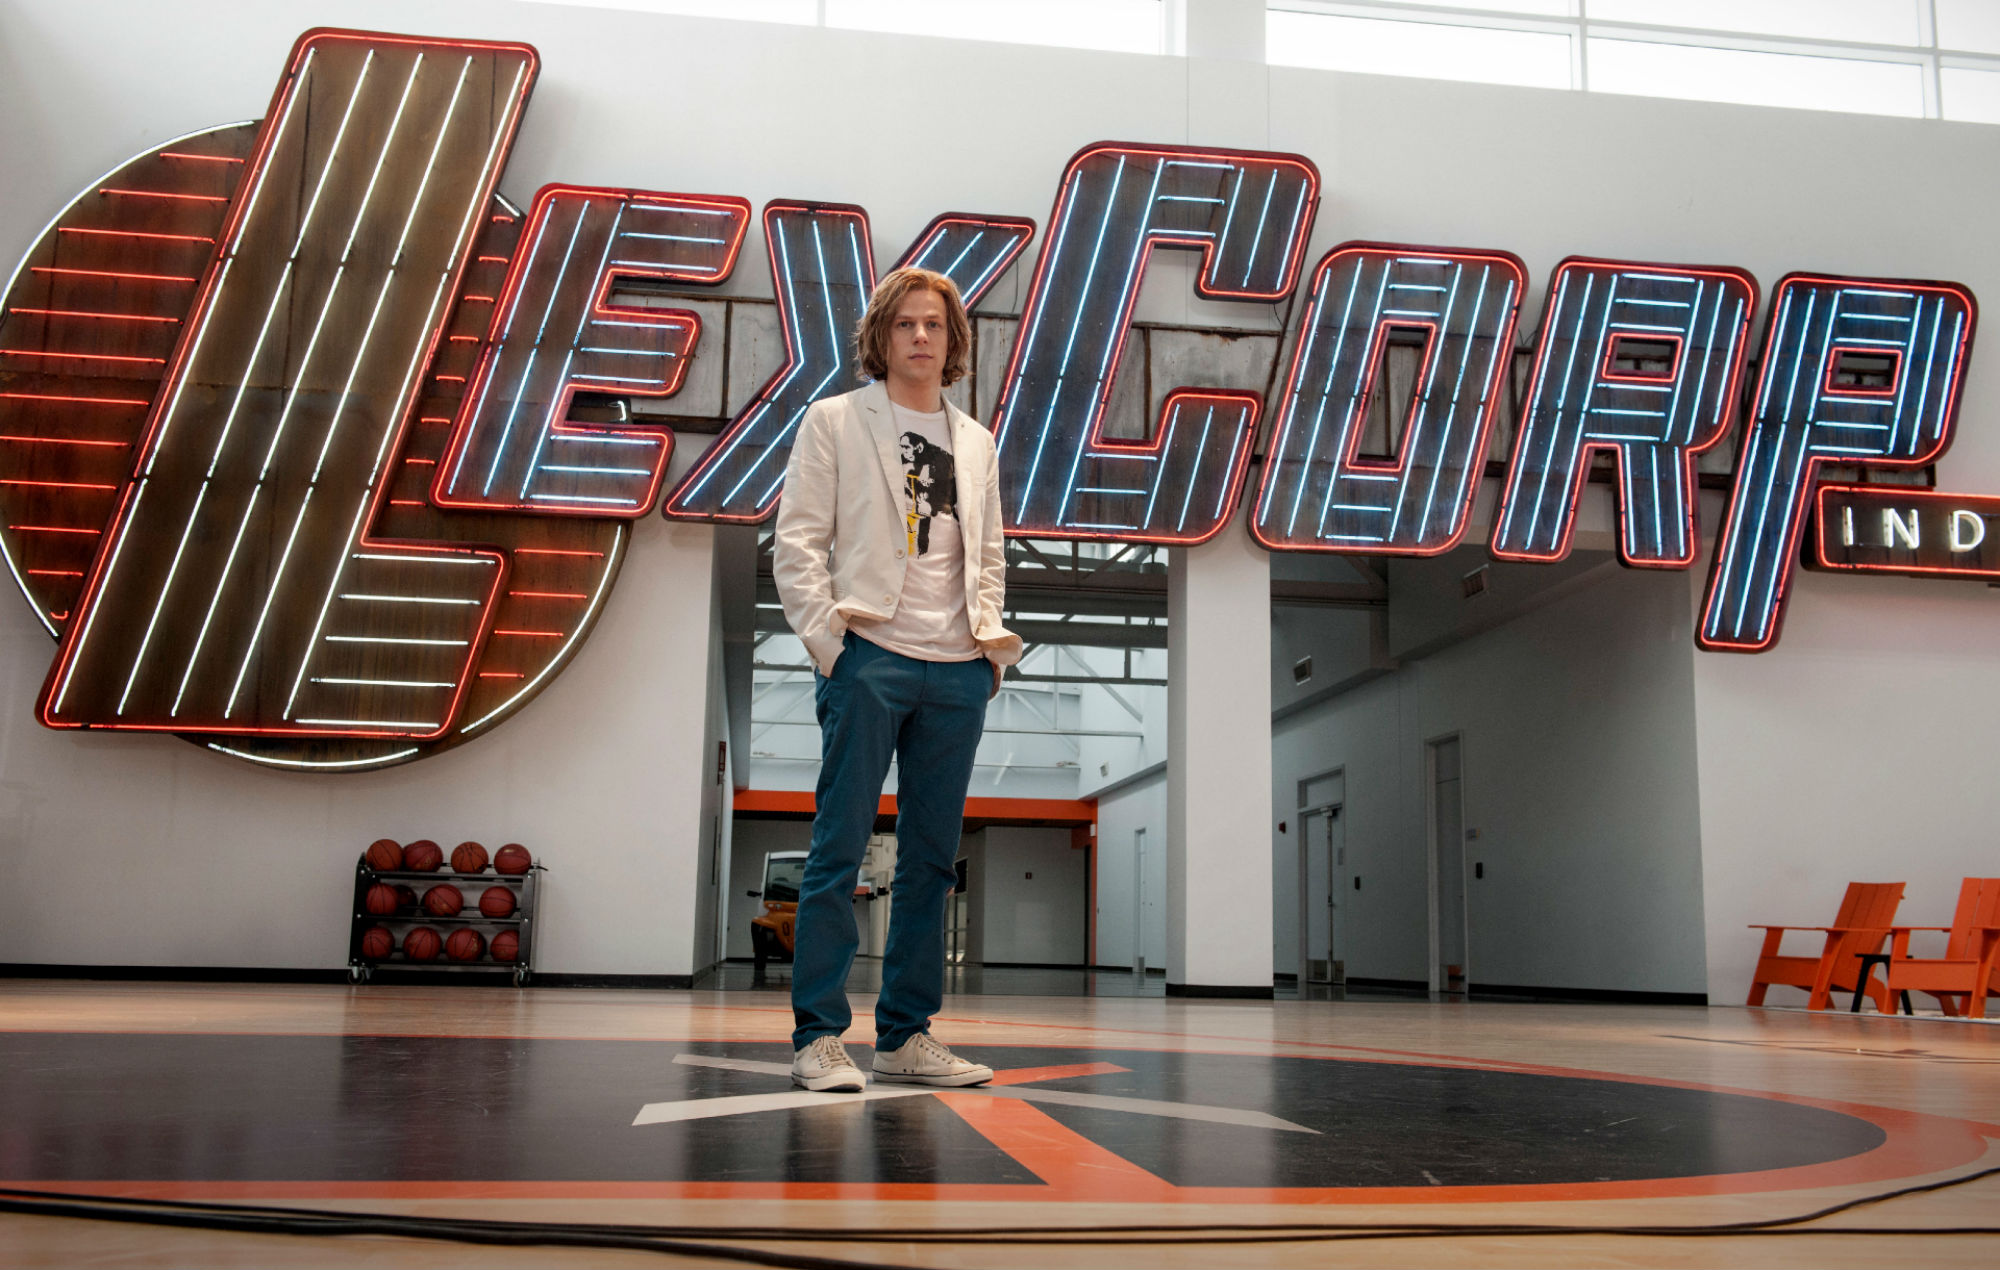 Lex Luthor solo movie reportedly in the works with villain as US president - NME